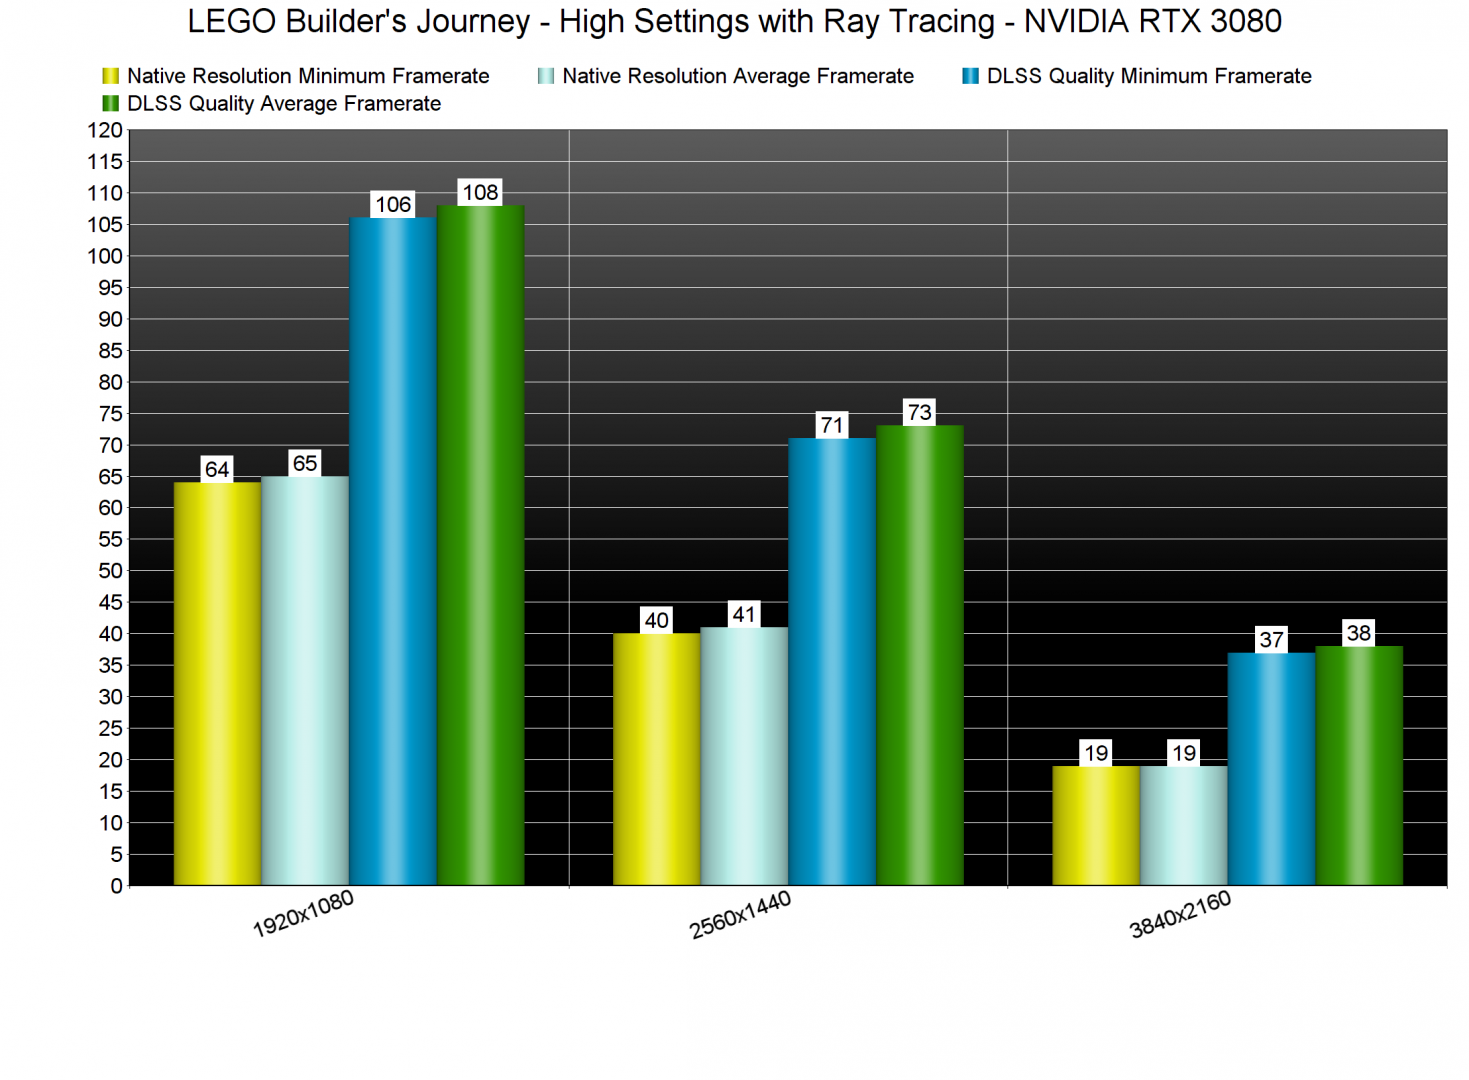 LEGO Builder's Journey Ray Tracing benchmarks